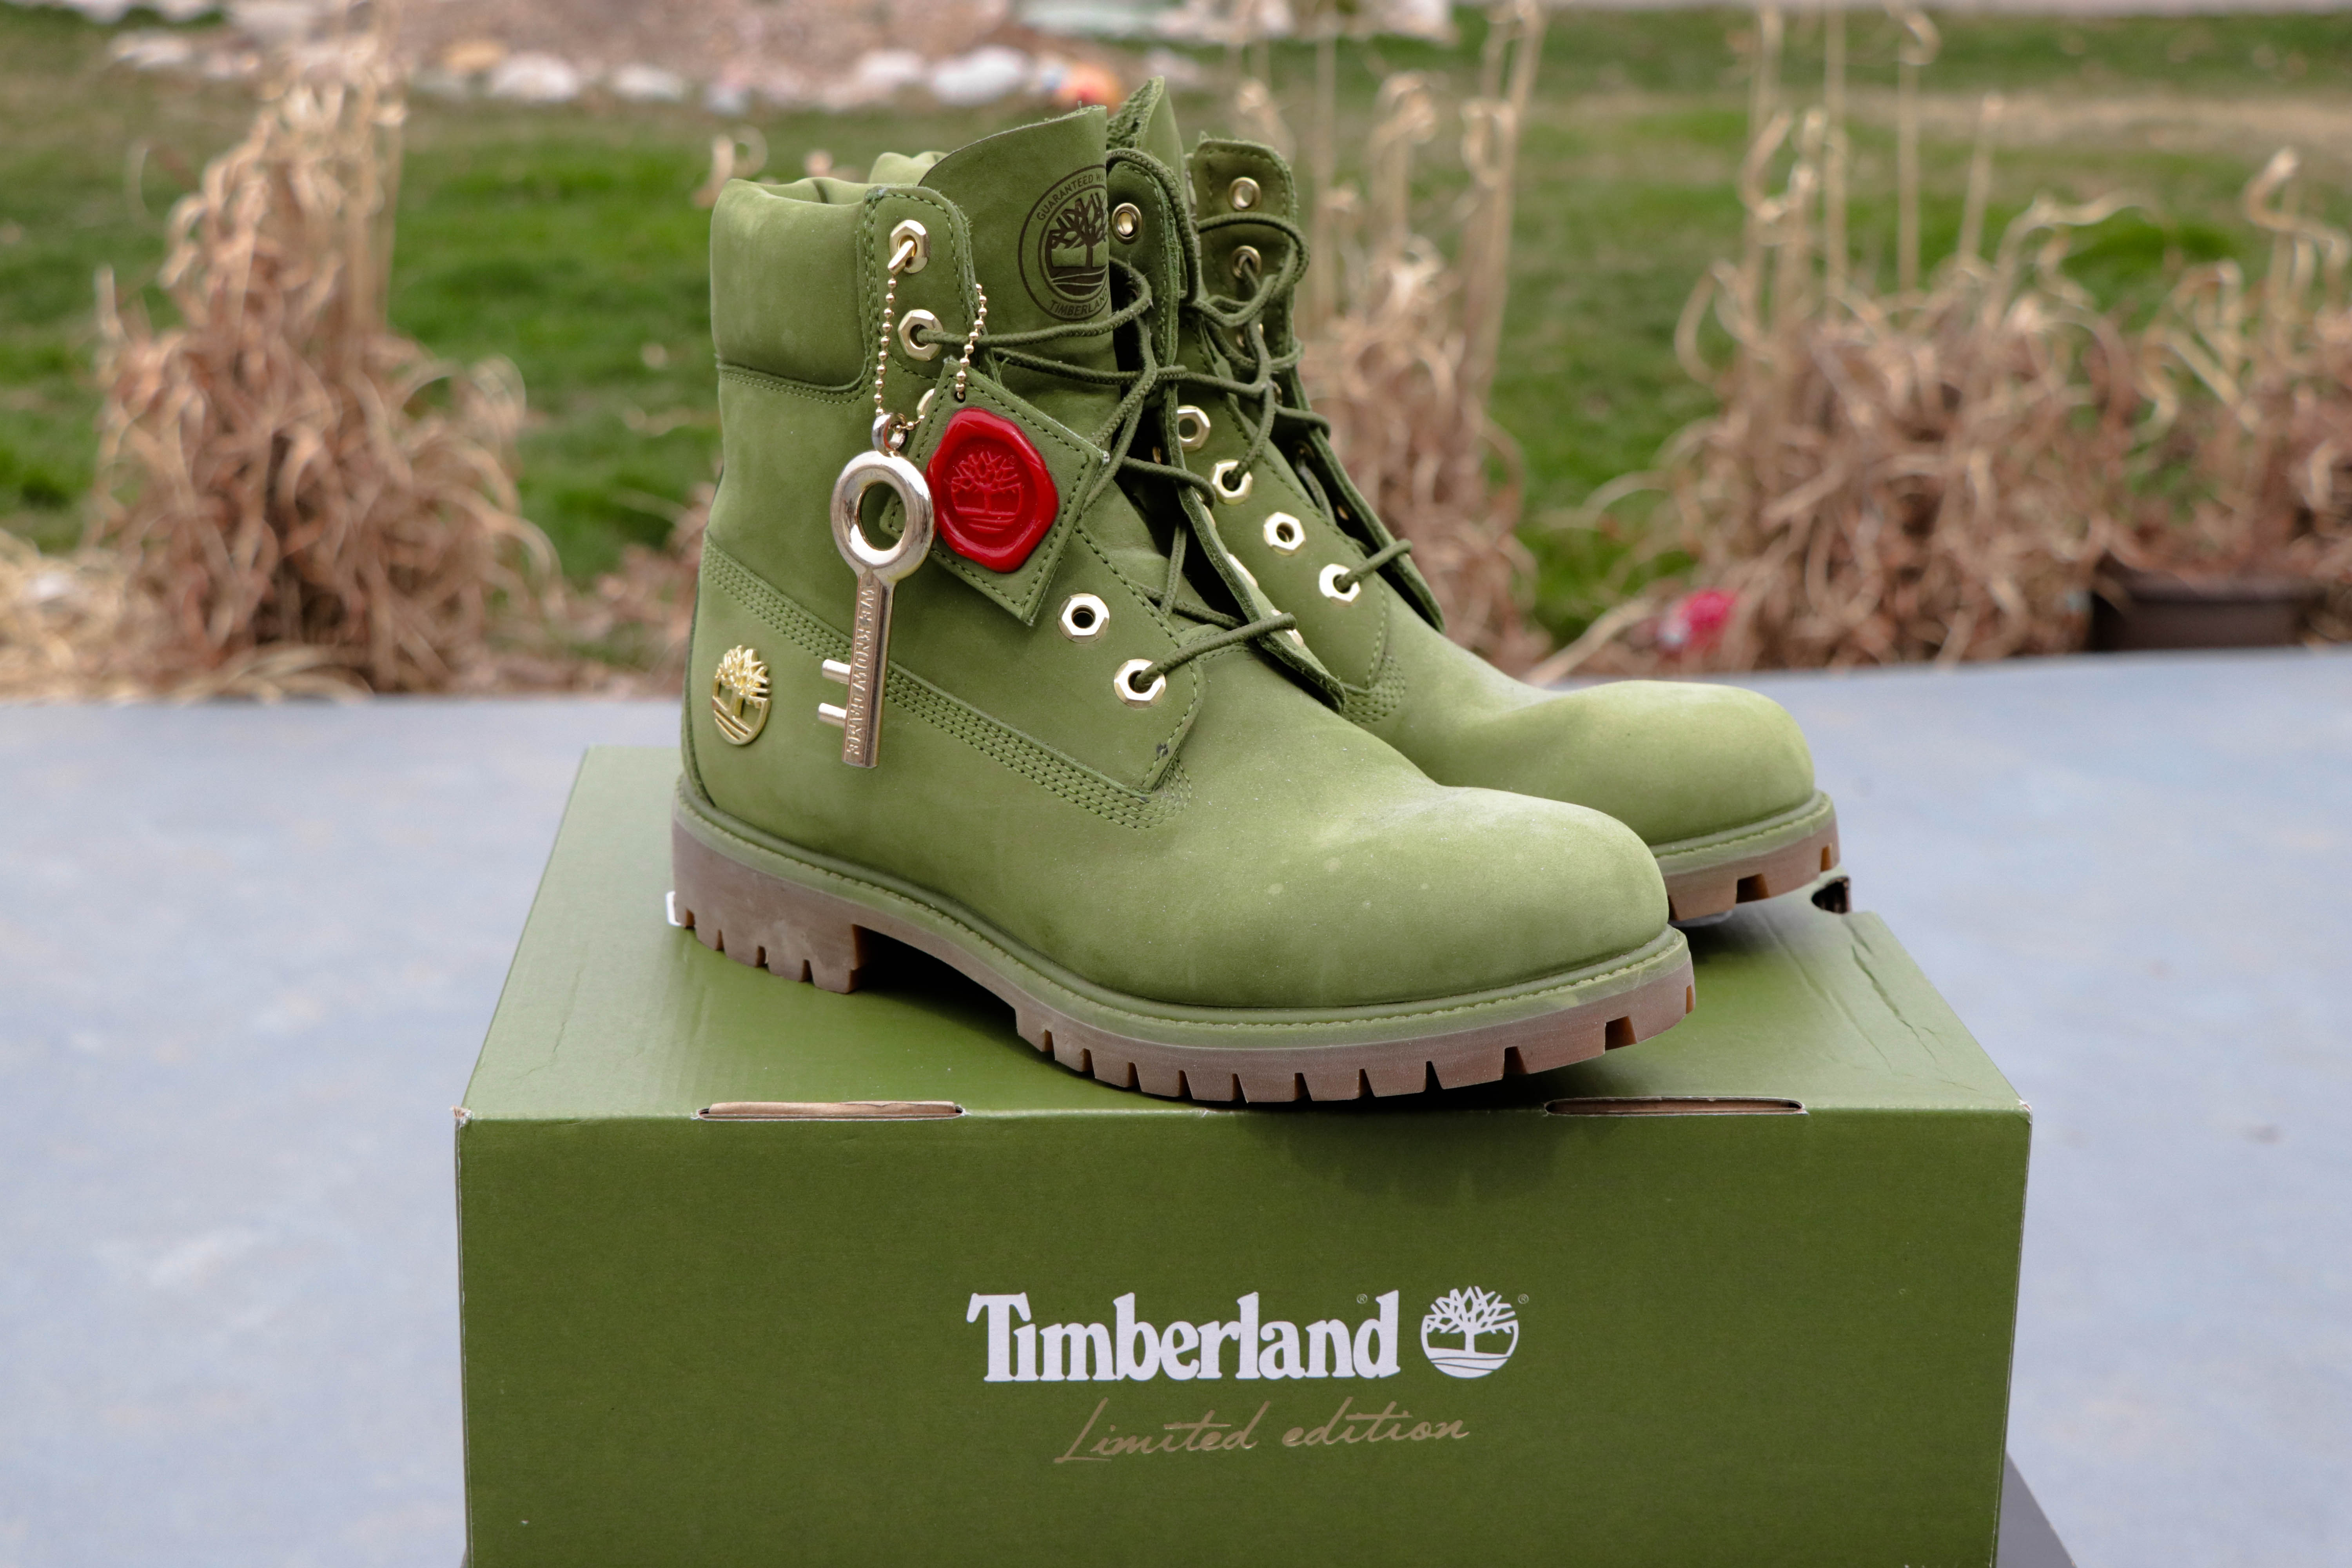 5534a1d33eb Timberland (LAST PRICE DROP 💥) Timberland 6 inch DJ Khaled Green Boots  Size 8 - Boots for Sale - Grailed